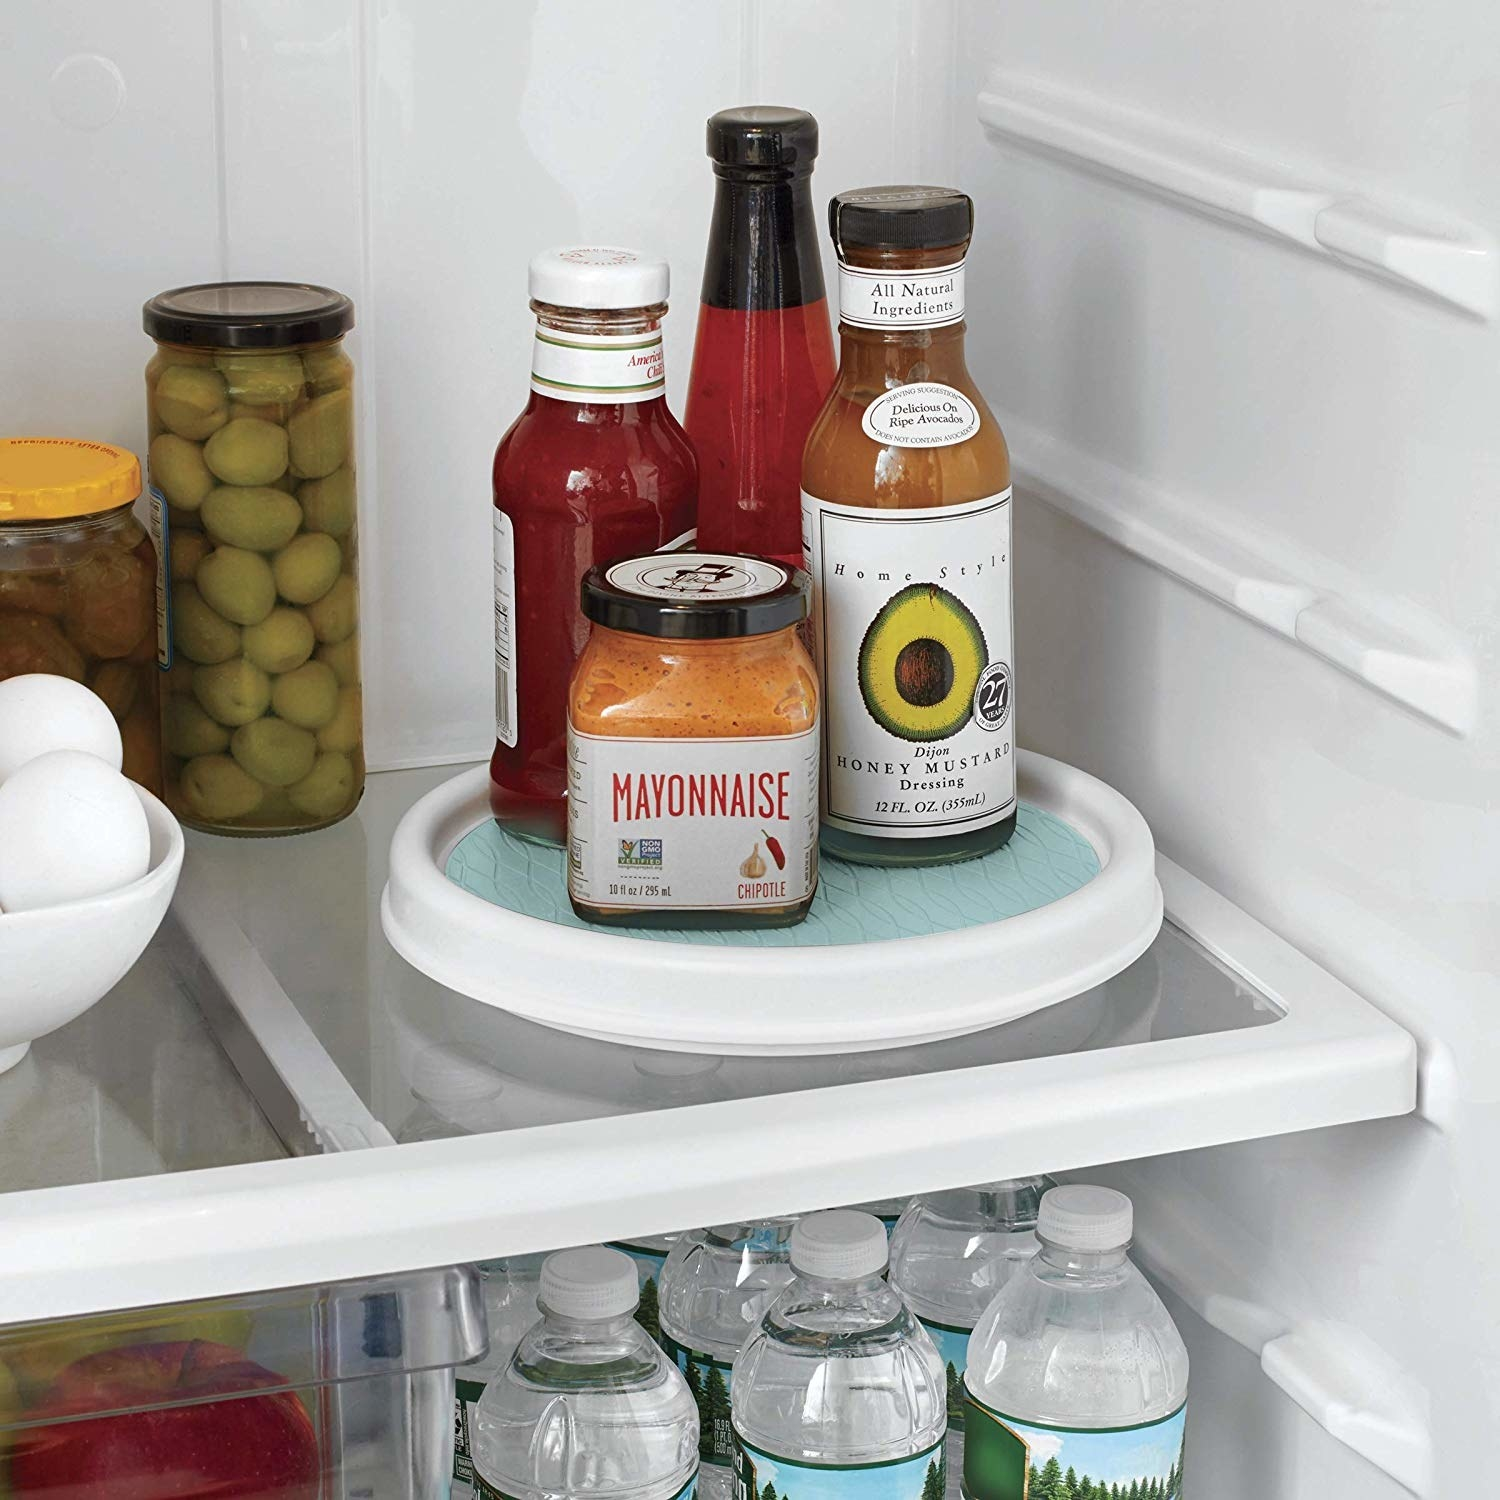 A small white turn table in a fridge with condiments on top of it